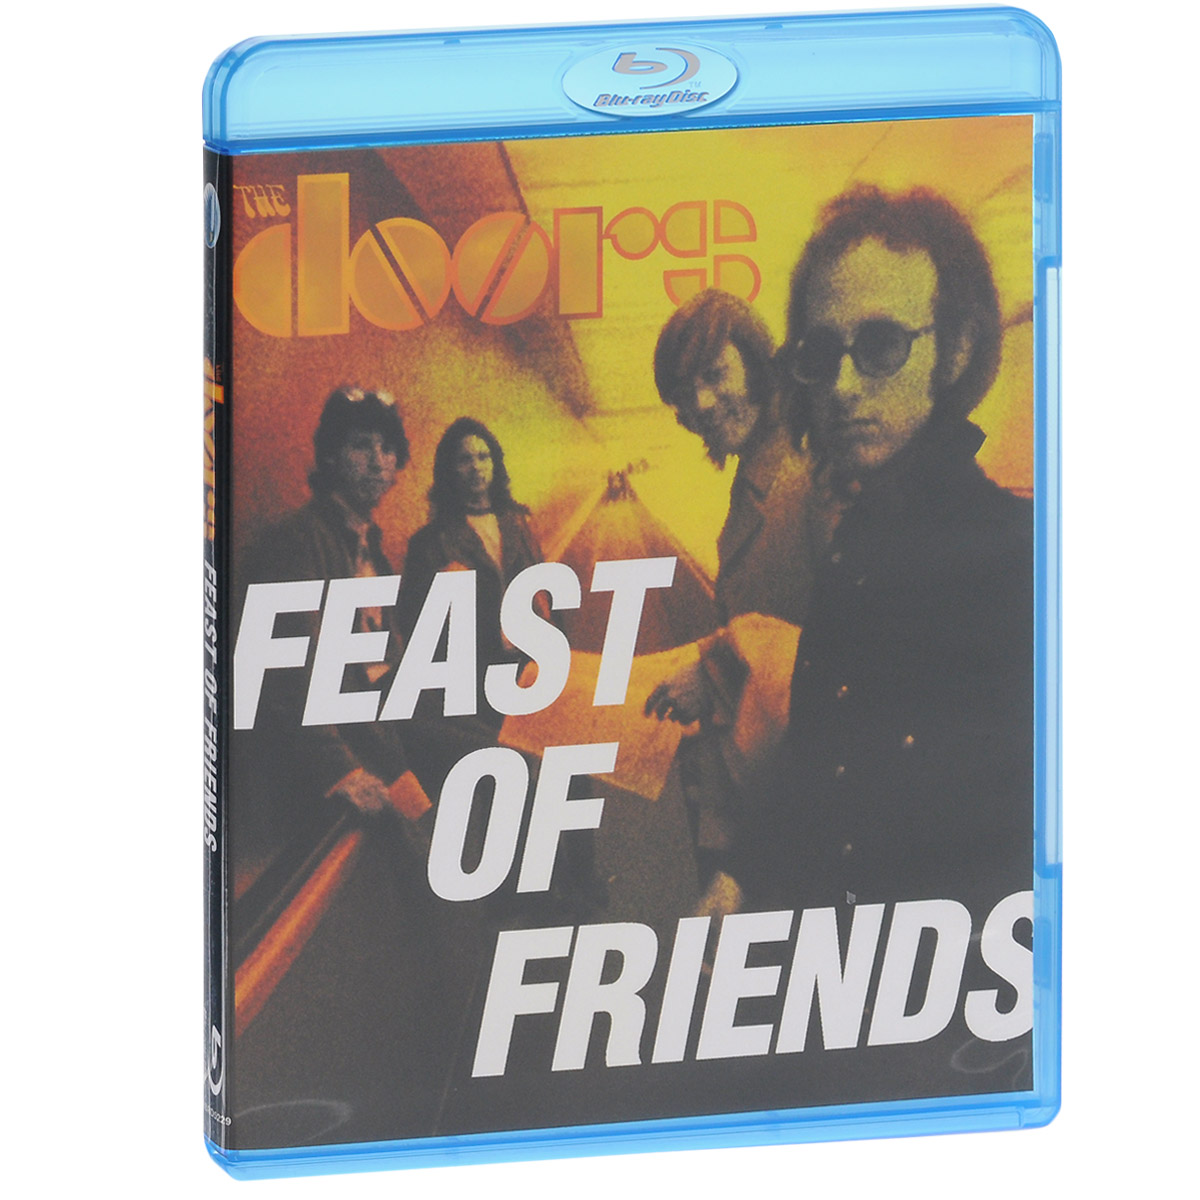 FEAST OF FRIENDS, filmed in 1968, was the first and only film produced about The Doors by The Doors. It offers a cinematic look at The Doors on the road during their summer '68 tour. Whilst never truly completed, the film provides a stylistic approach in true sixties cinema verite style. Concert performances are intercut with fly-on-the-wall footage of the group in their natural habitat, sometimes playful, sensitive, chaotic and touching. Other than a few appearances in film festivals in 1968, an official release would never be seen until now. Completely restored from the original negative, as supervised by Jim Morrison, the film has been colour-corrected and cleaned in high definition with the soundtrack totally remixed and remastered by long-time Doors' collaborator Bruce Botnick.BONUS FEATURES- A newly produced feature using footage shot for feast of Friends, Encore is a complimentary piece which provides a deeper look into the life of the band at this period as they tour, record, travel and even vacation together. The program avoids the typical selection of hits and makes use of The Doors rare recordings to accompany this unreleased footage.- A British TV documentary originally aired on December 17th, 1968, The Doors Are Open is focused around the band's performance at London's Roundhouse, which took place just days after the completion of filming for Feast of Friends. Although previously released, the film has suffered from numerous sound and picture quality issues. Now the image quality has been dramatically improved and the sound has been transformed by Bruce Botnick to be as true to the original live sound as possible.- Filmed in Toronto, Canada in August 1967 and first broadcast in October that year, this performance of